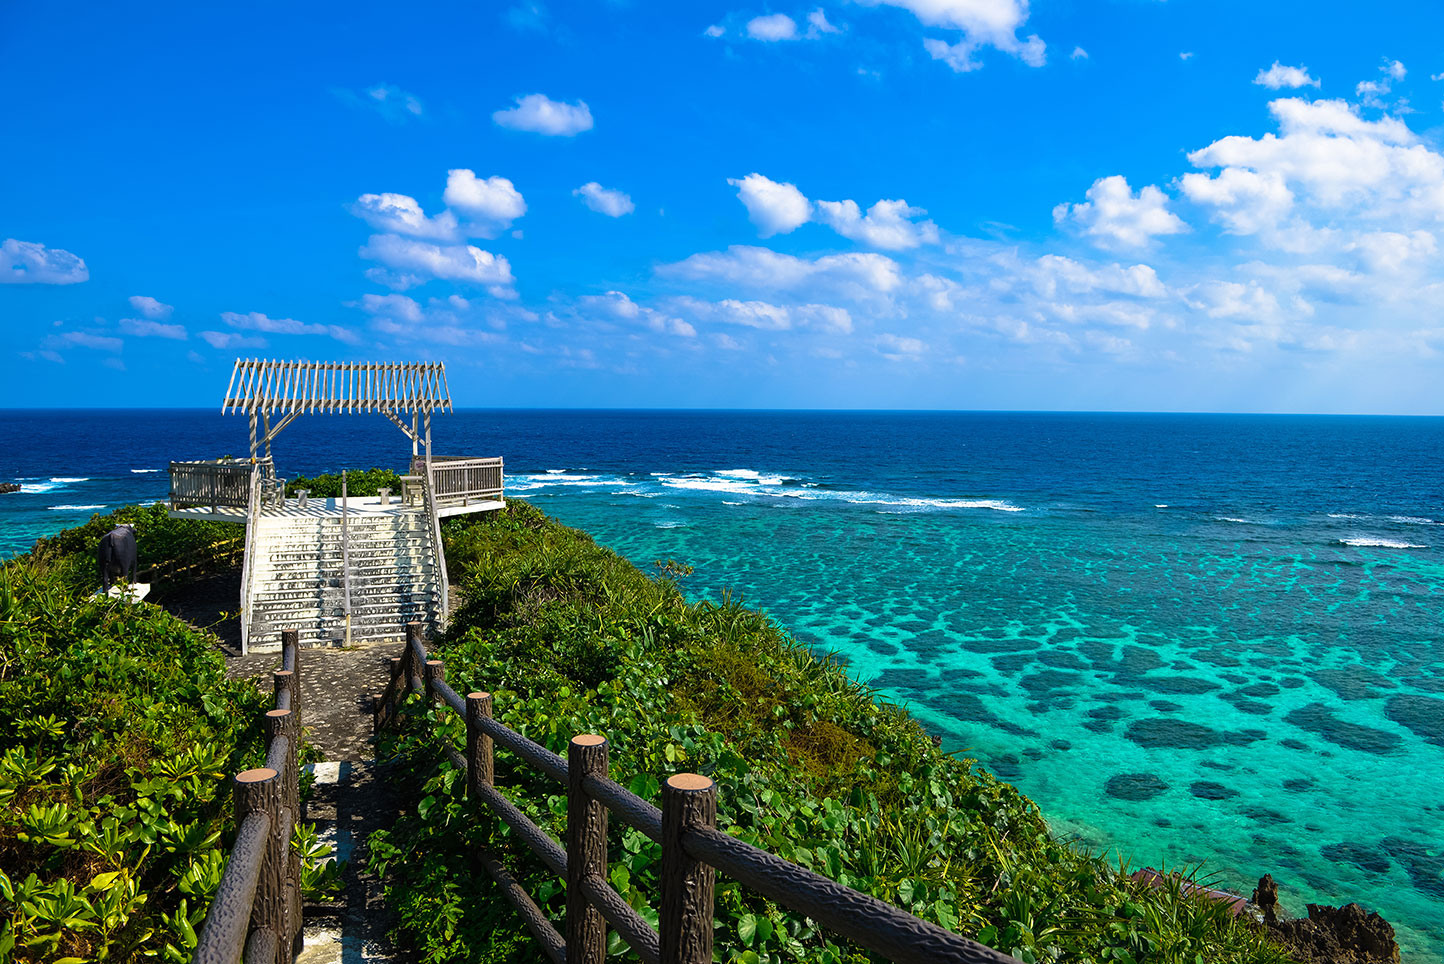 A wooden pier surrounded by foliage leads into multi-shade blue water in Okinawa